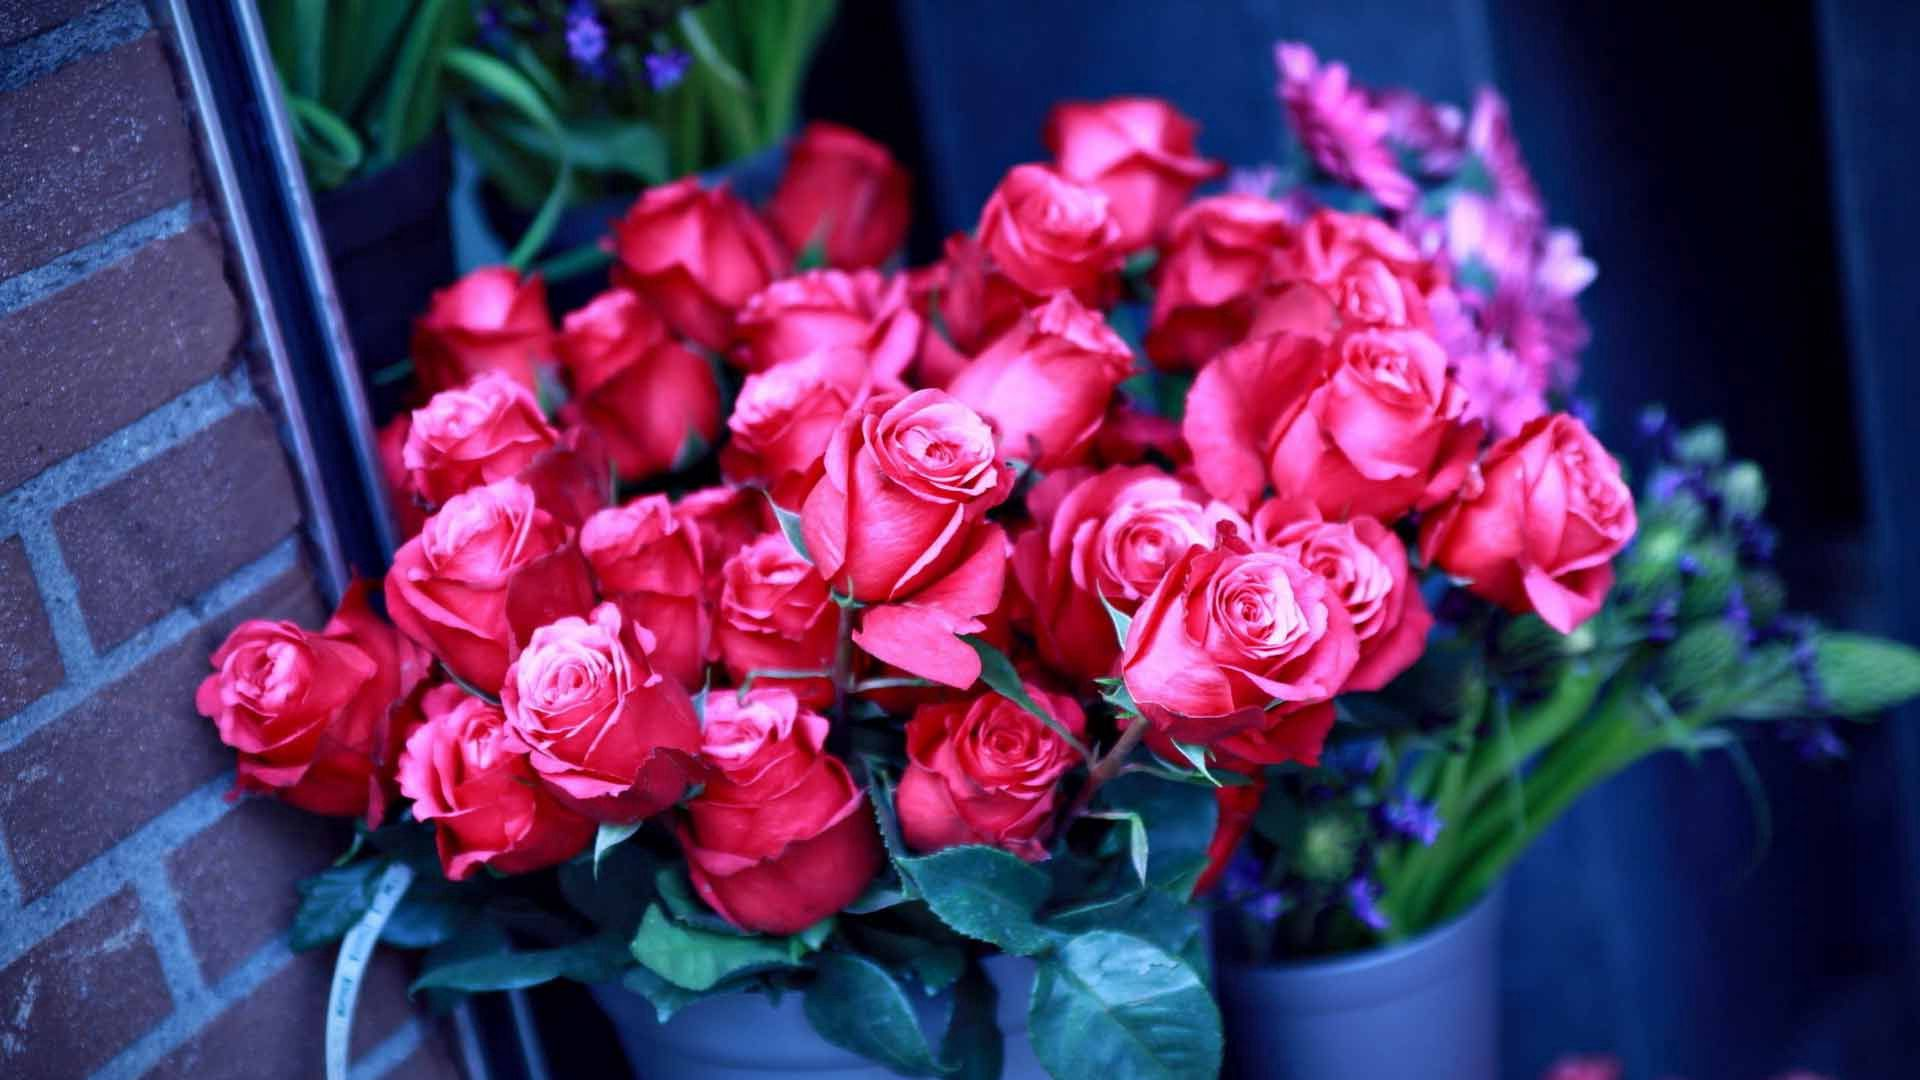 128749 download wallpaper Flowers, Lot, Pot, Wall, Roses screensavers and pictures for free